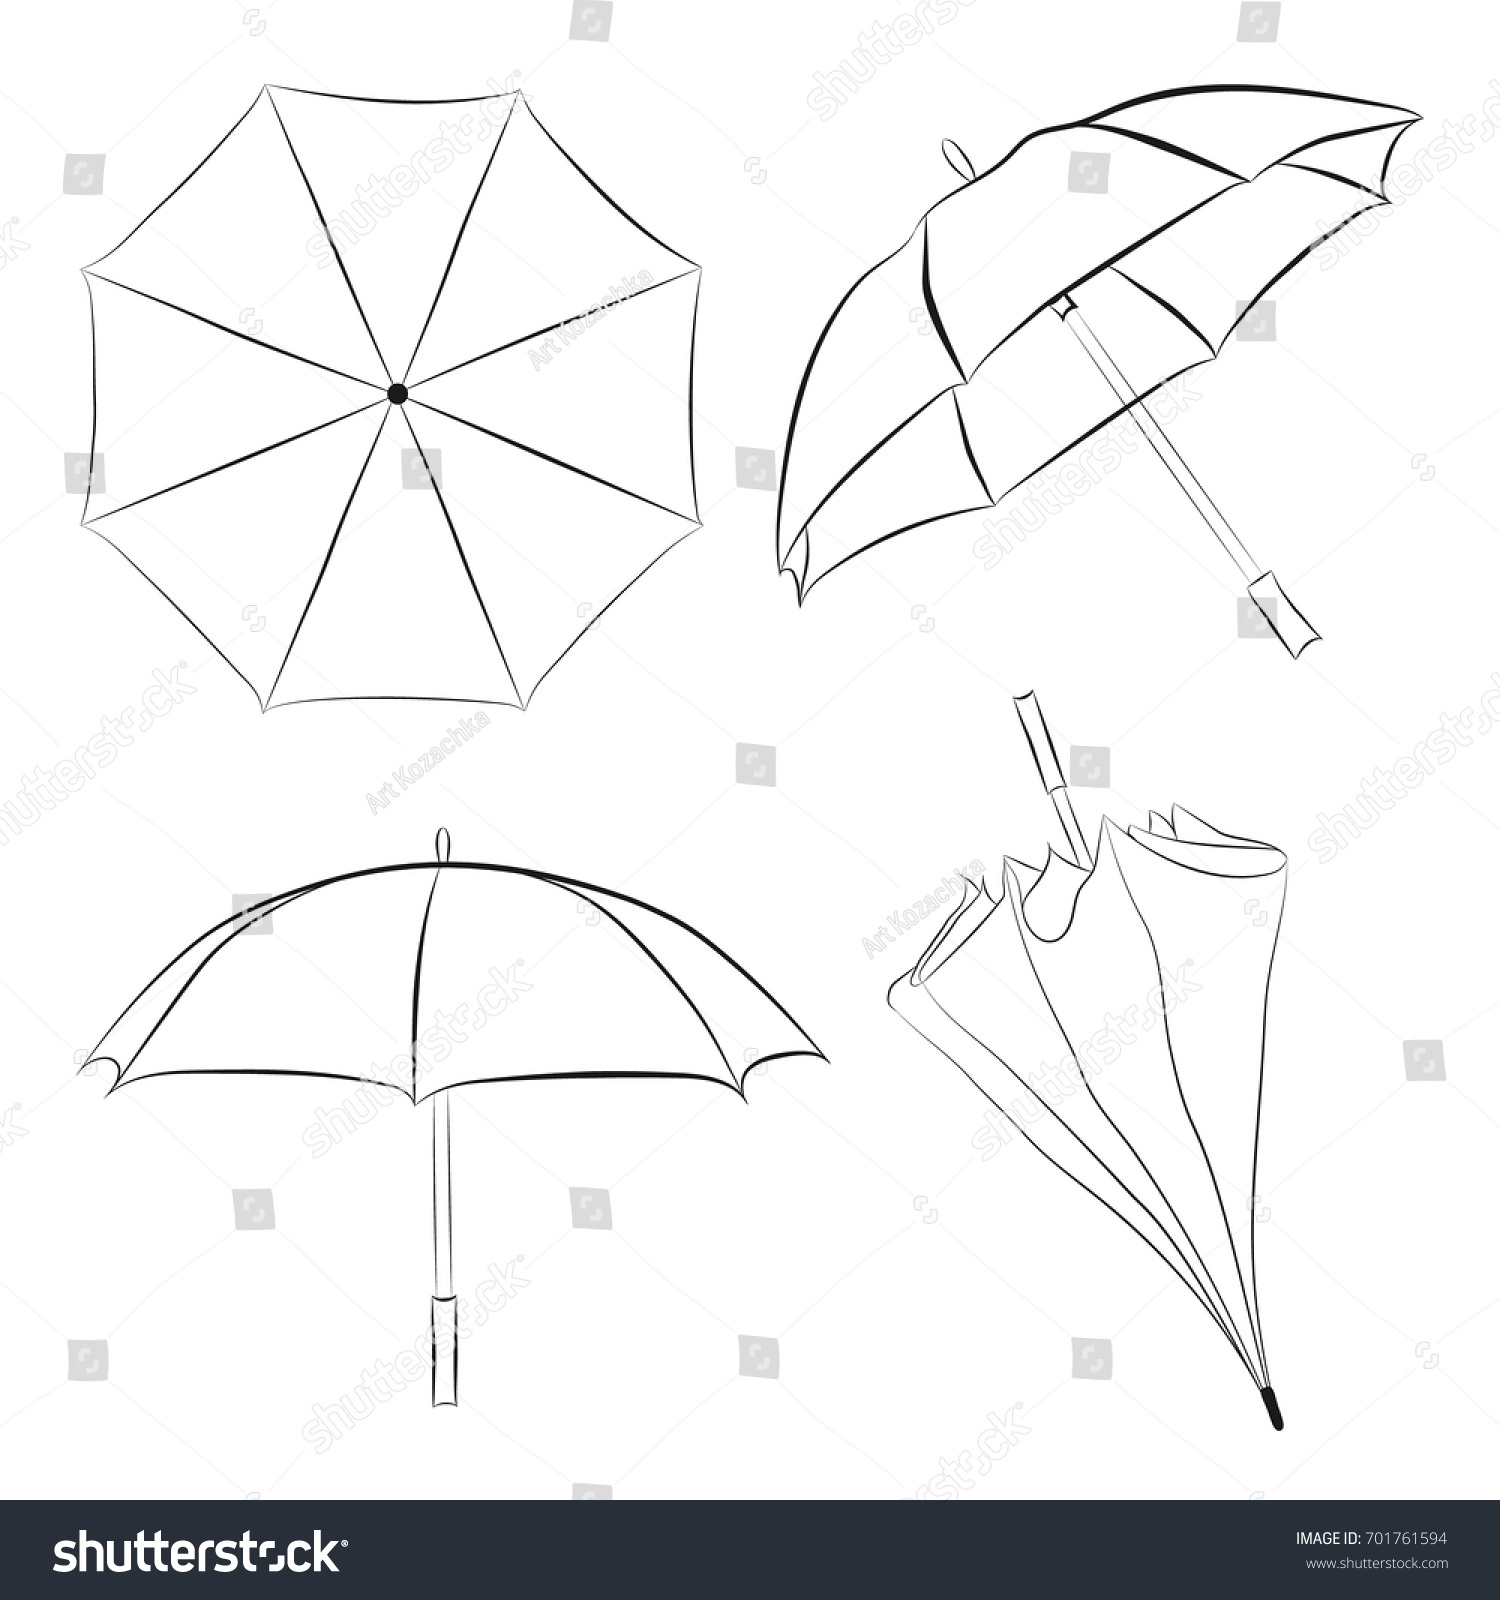 Set of umbrellas sketches doodle style umbrellas vector illustrations vector umbrellas isolated on white